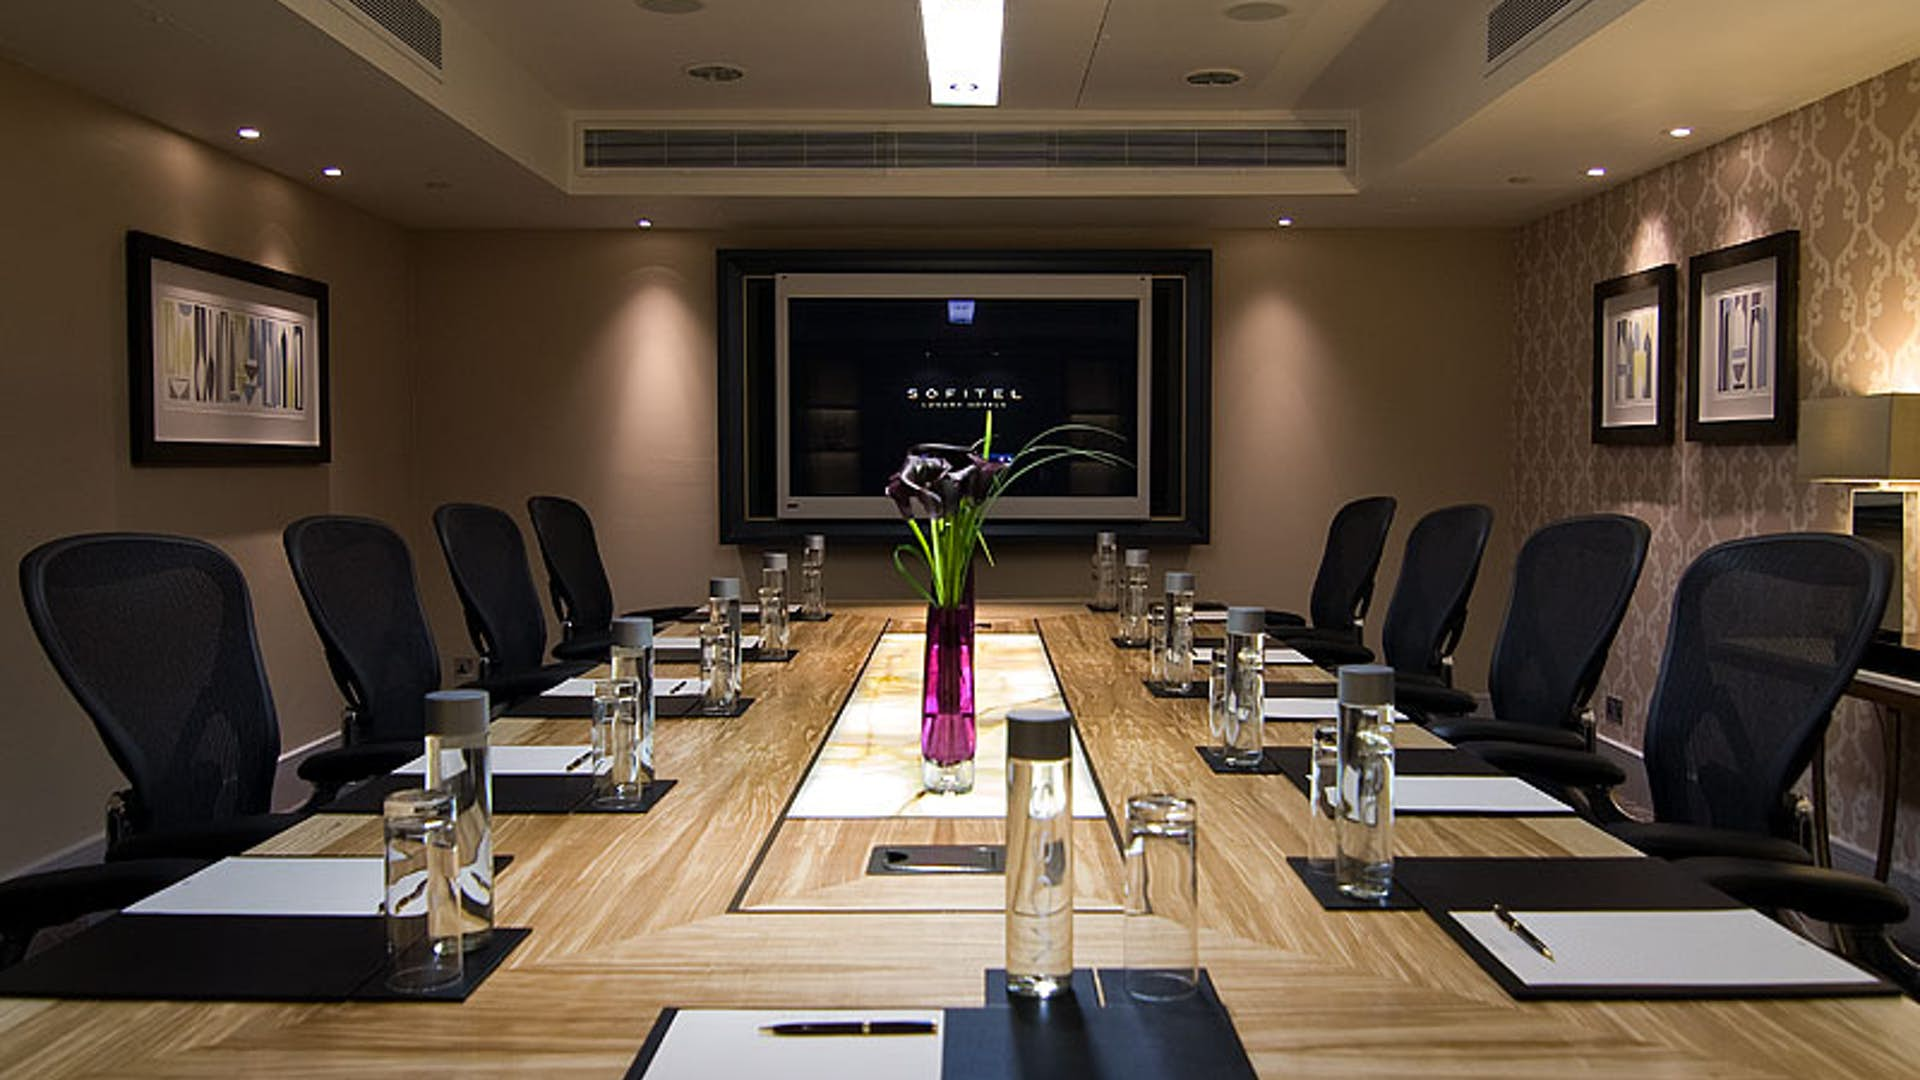 Meeting room at Sofitel St James